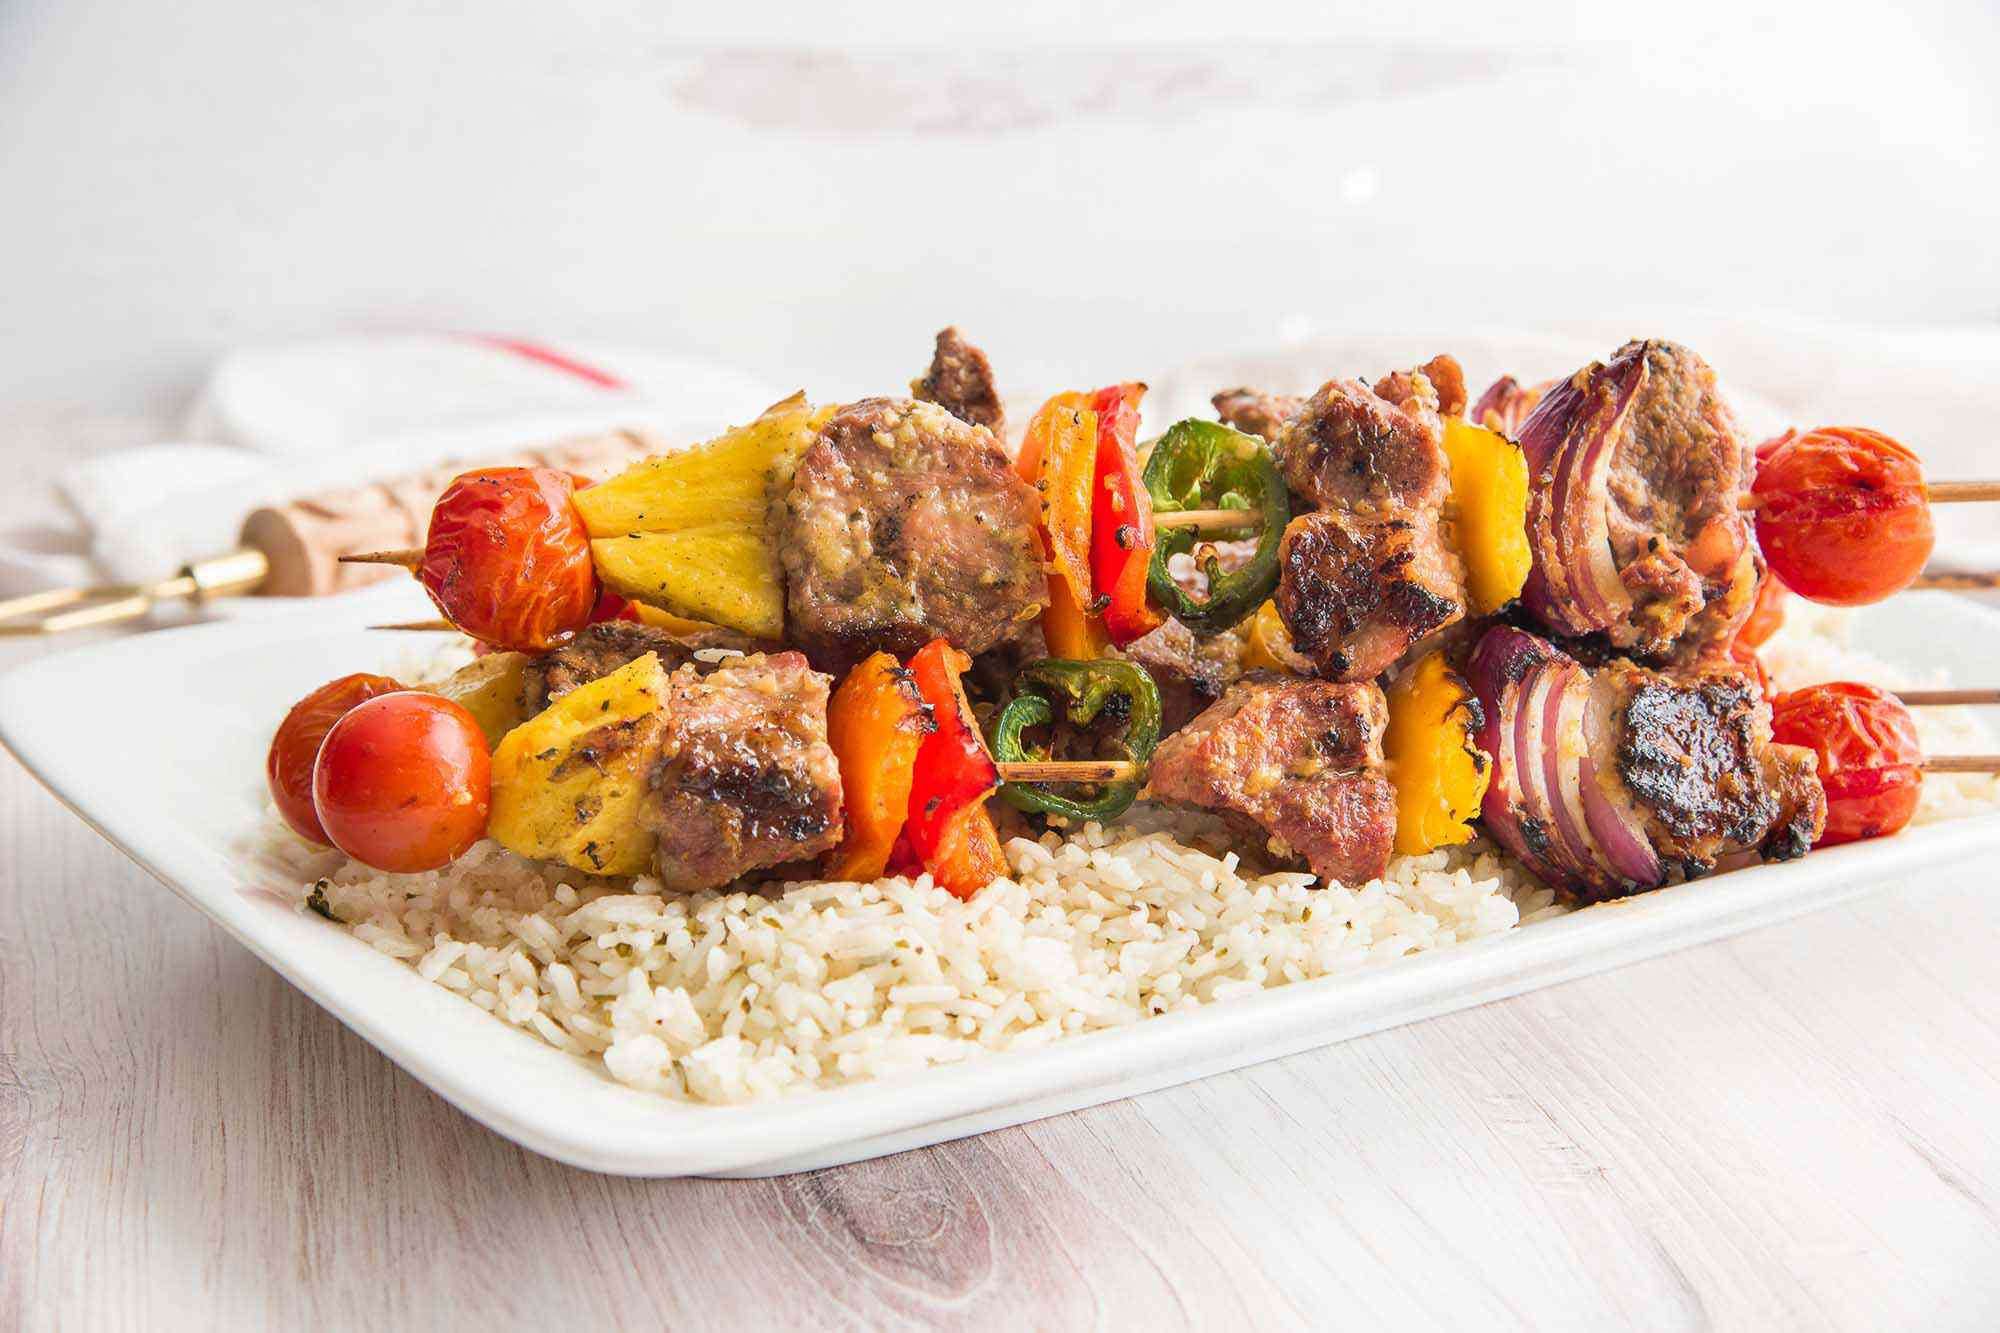 Pork kebabs with grilled pineapple and a rainbow of vegetables are on a platter along with rice.